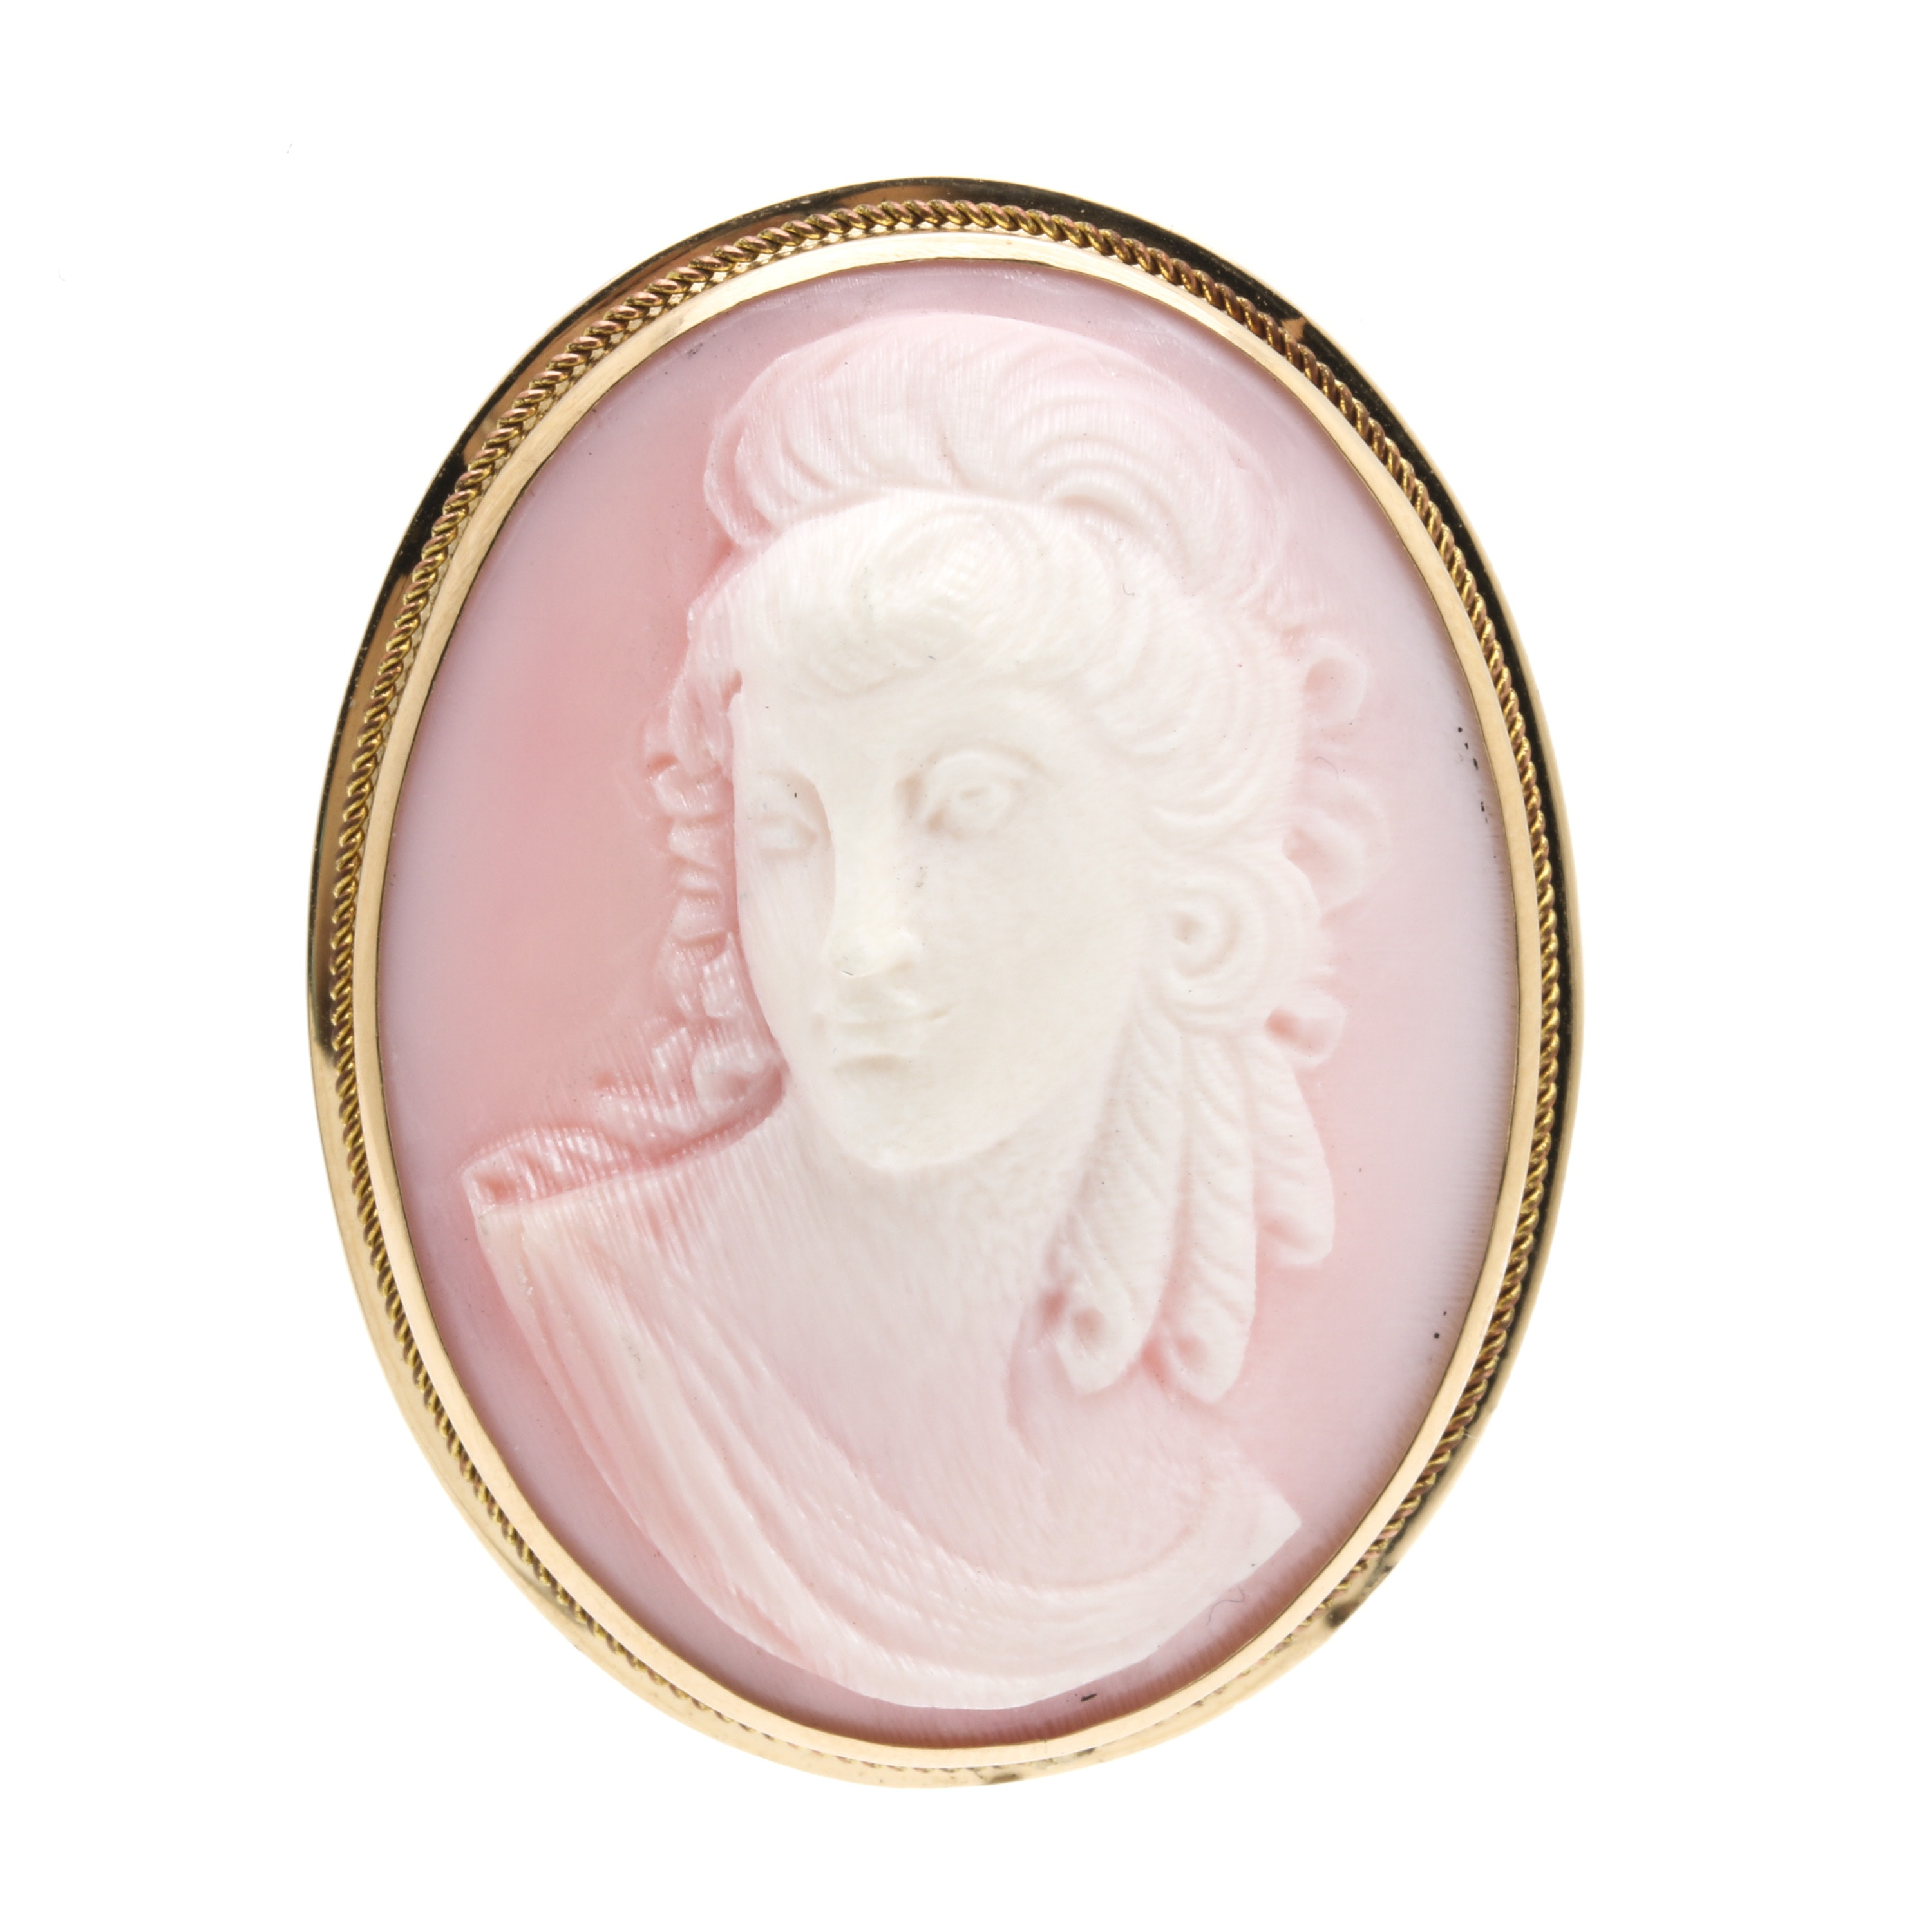 14K Yellow Gold Conch Shell Cameo Converter Brooch